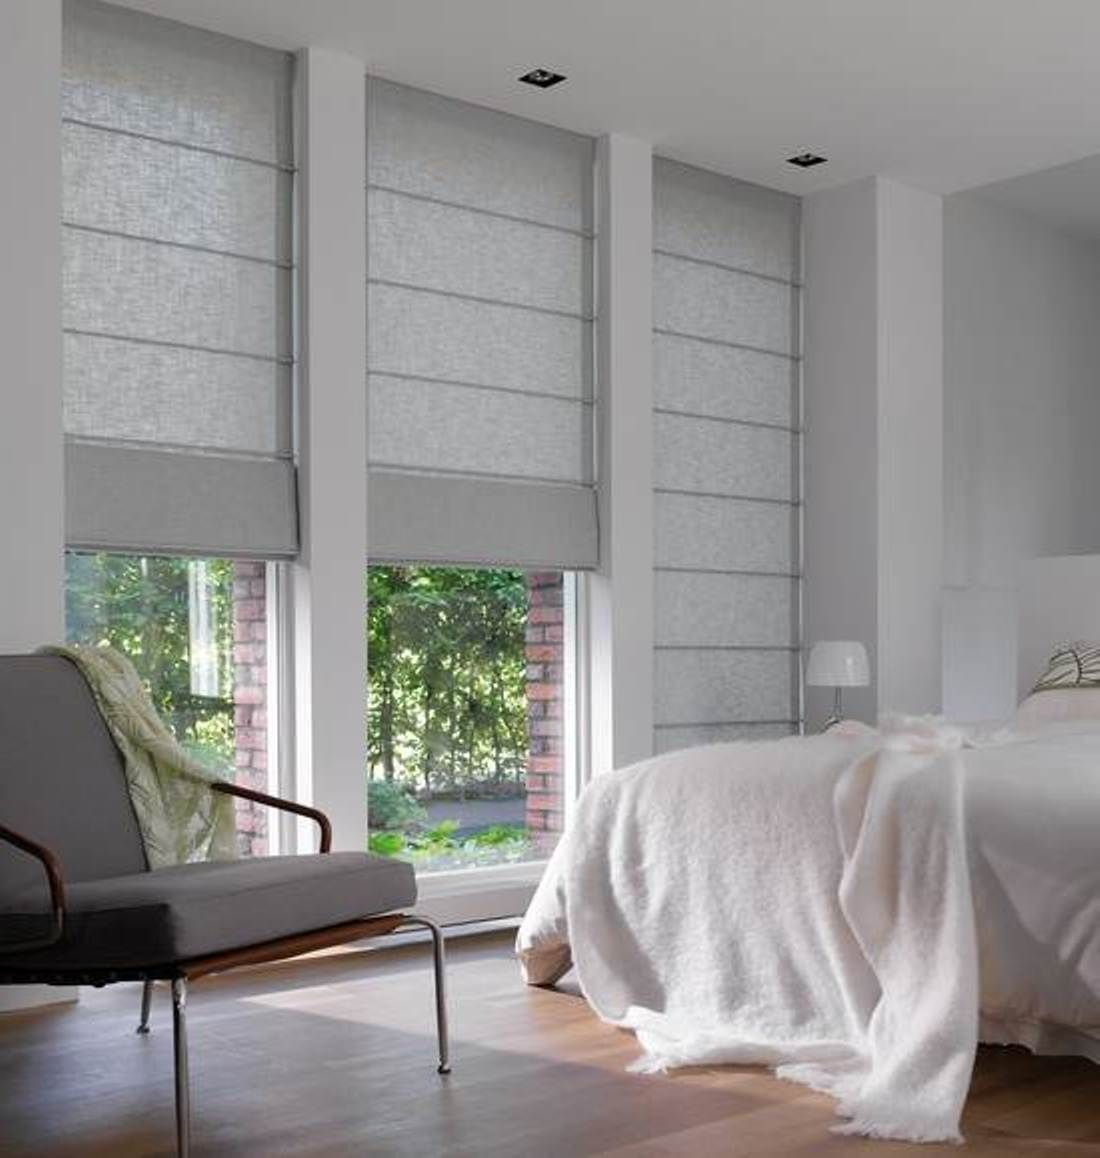 Bedroom Blinds Ideas Set Property stunning window treatments for bedrooms | bedroom blinds, window